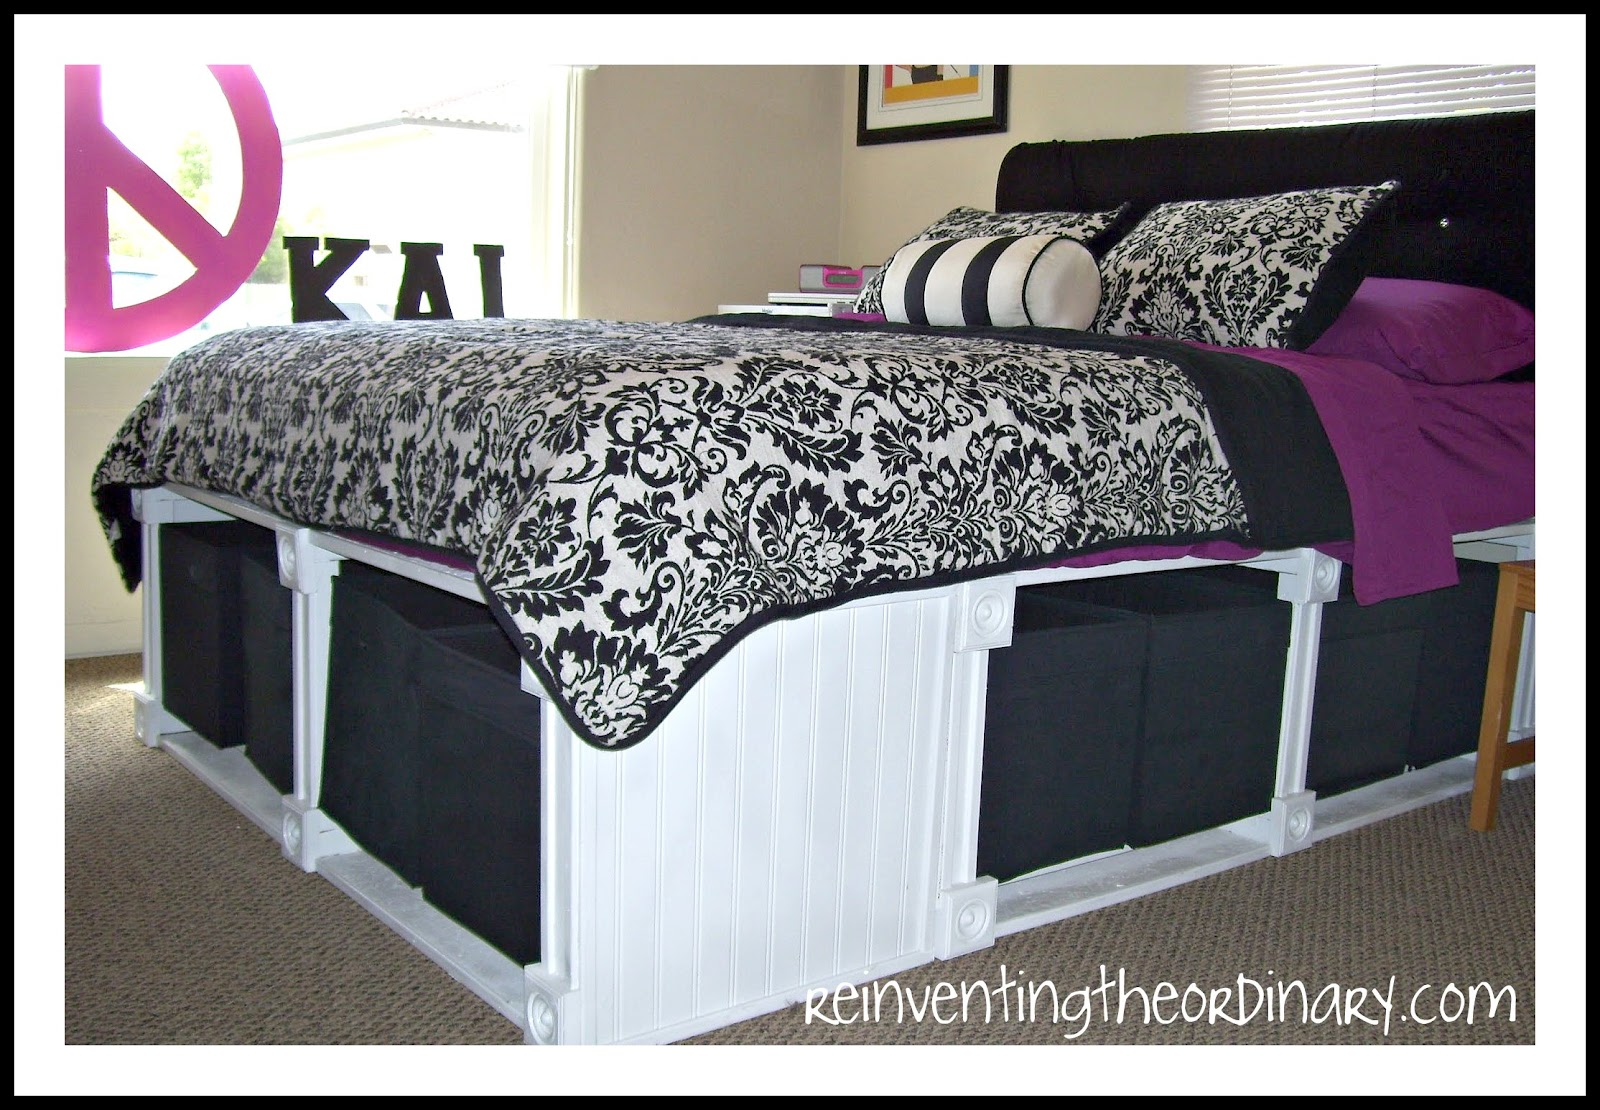 Reinventing the Ordinary: Featured Platform Bed ... the DIY